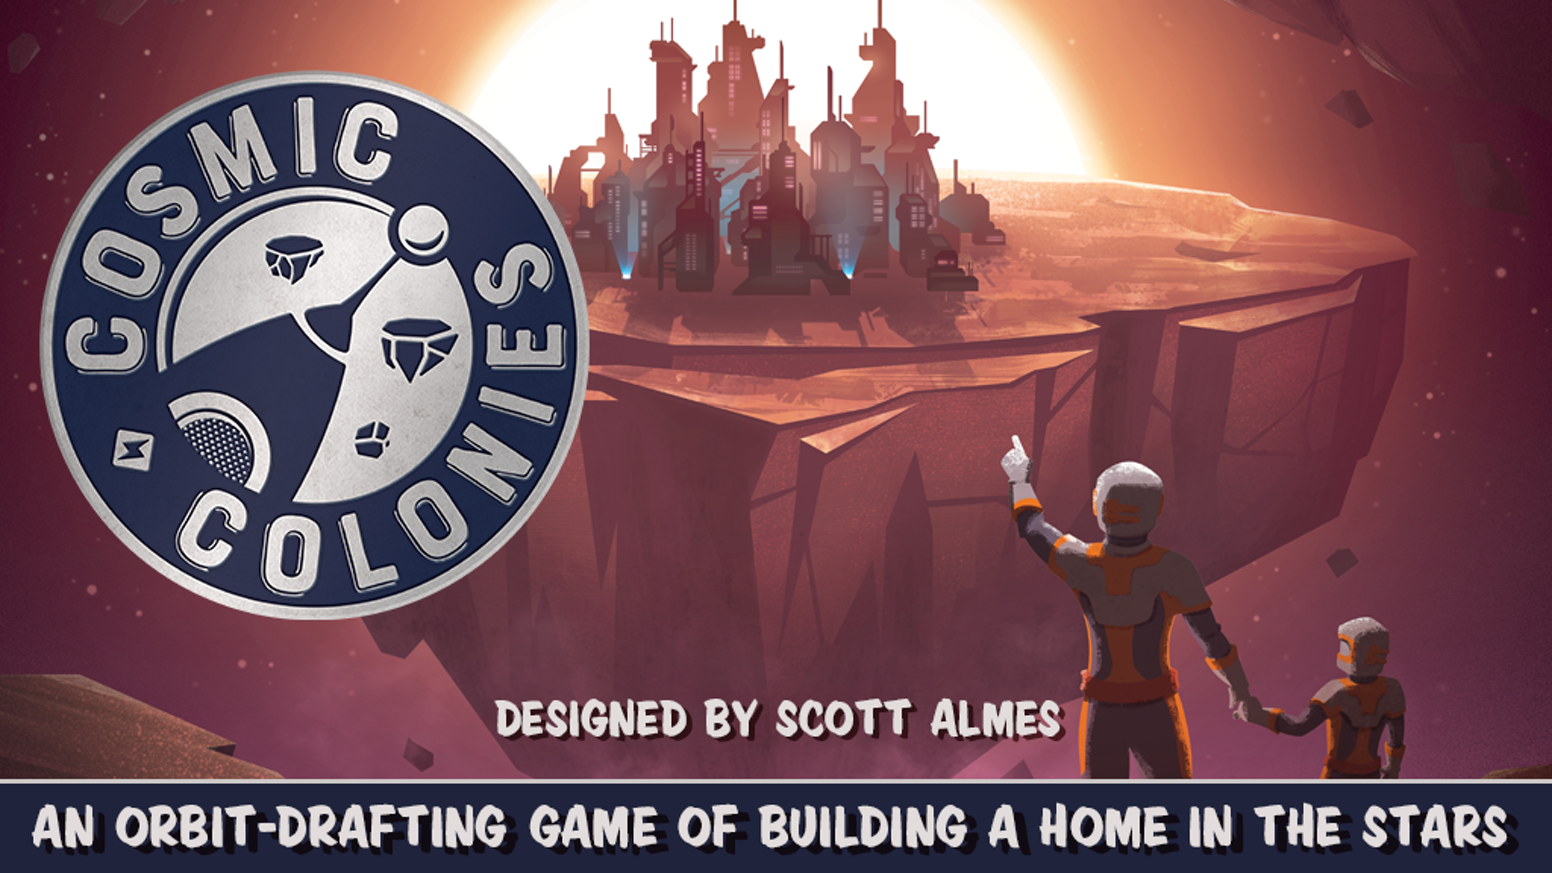 An Orbit Drafting Game of Building a Home in the Stars designed by Scott Almes.